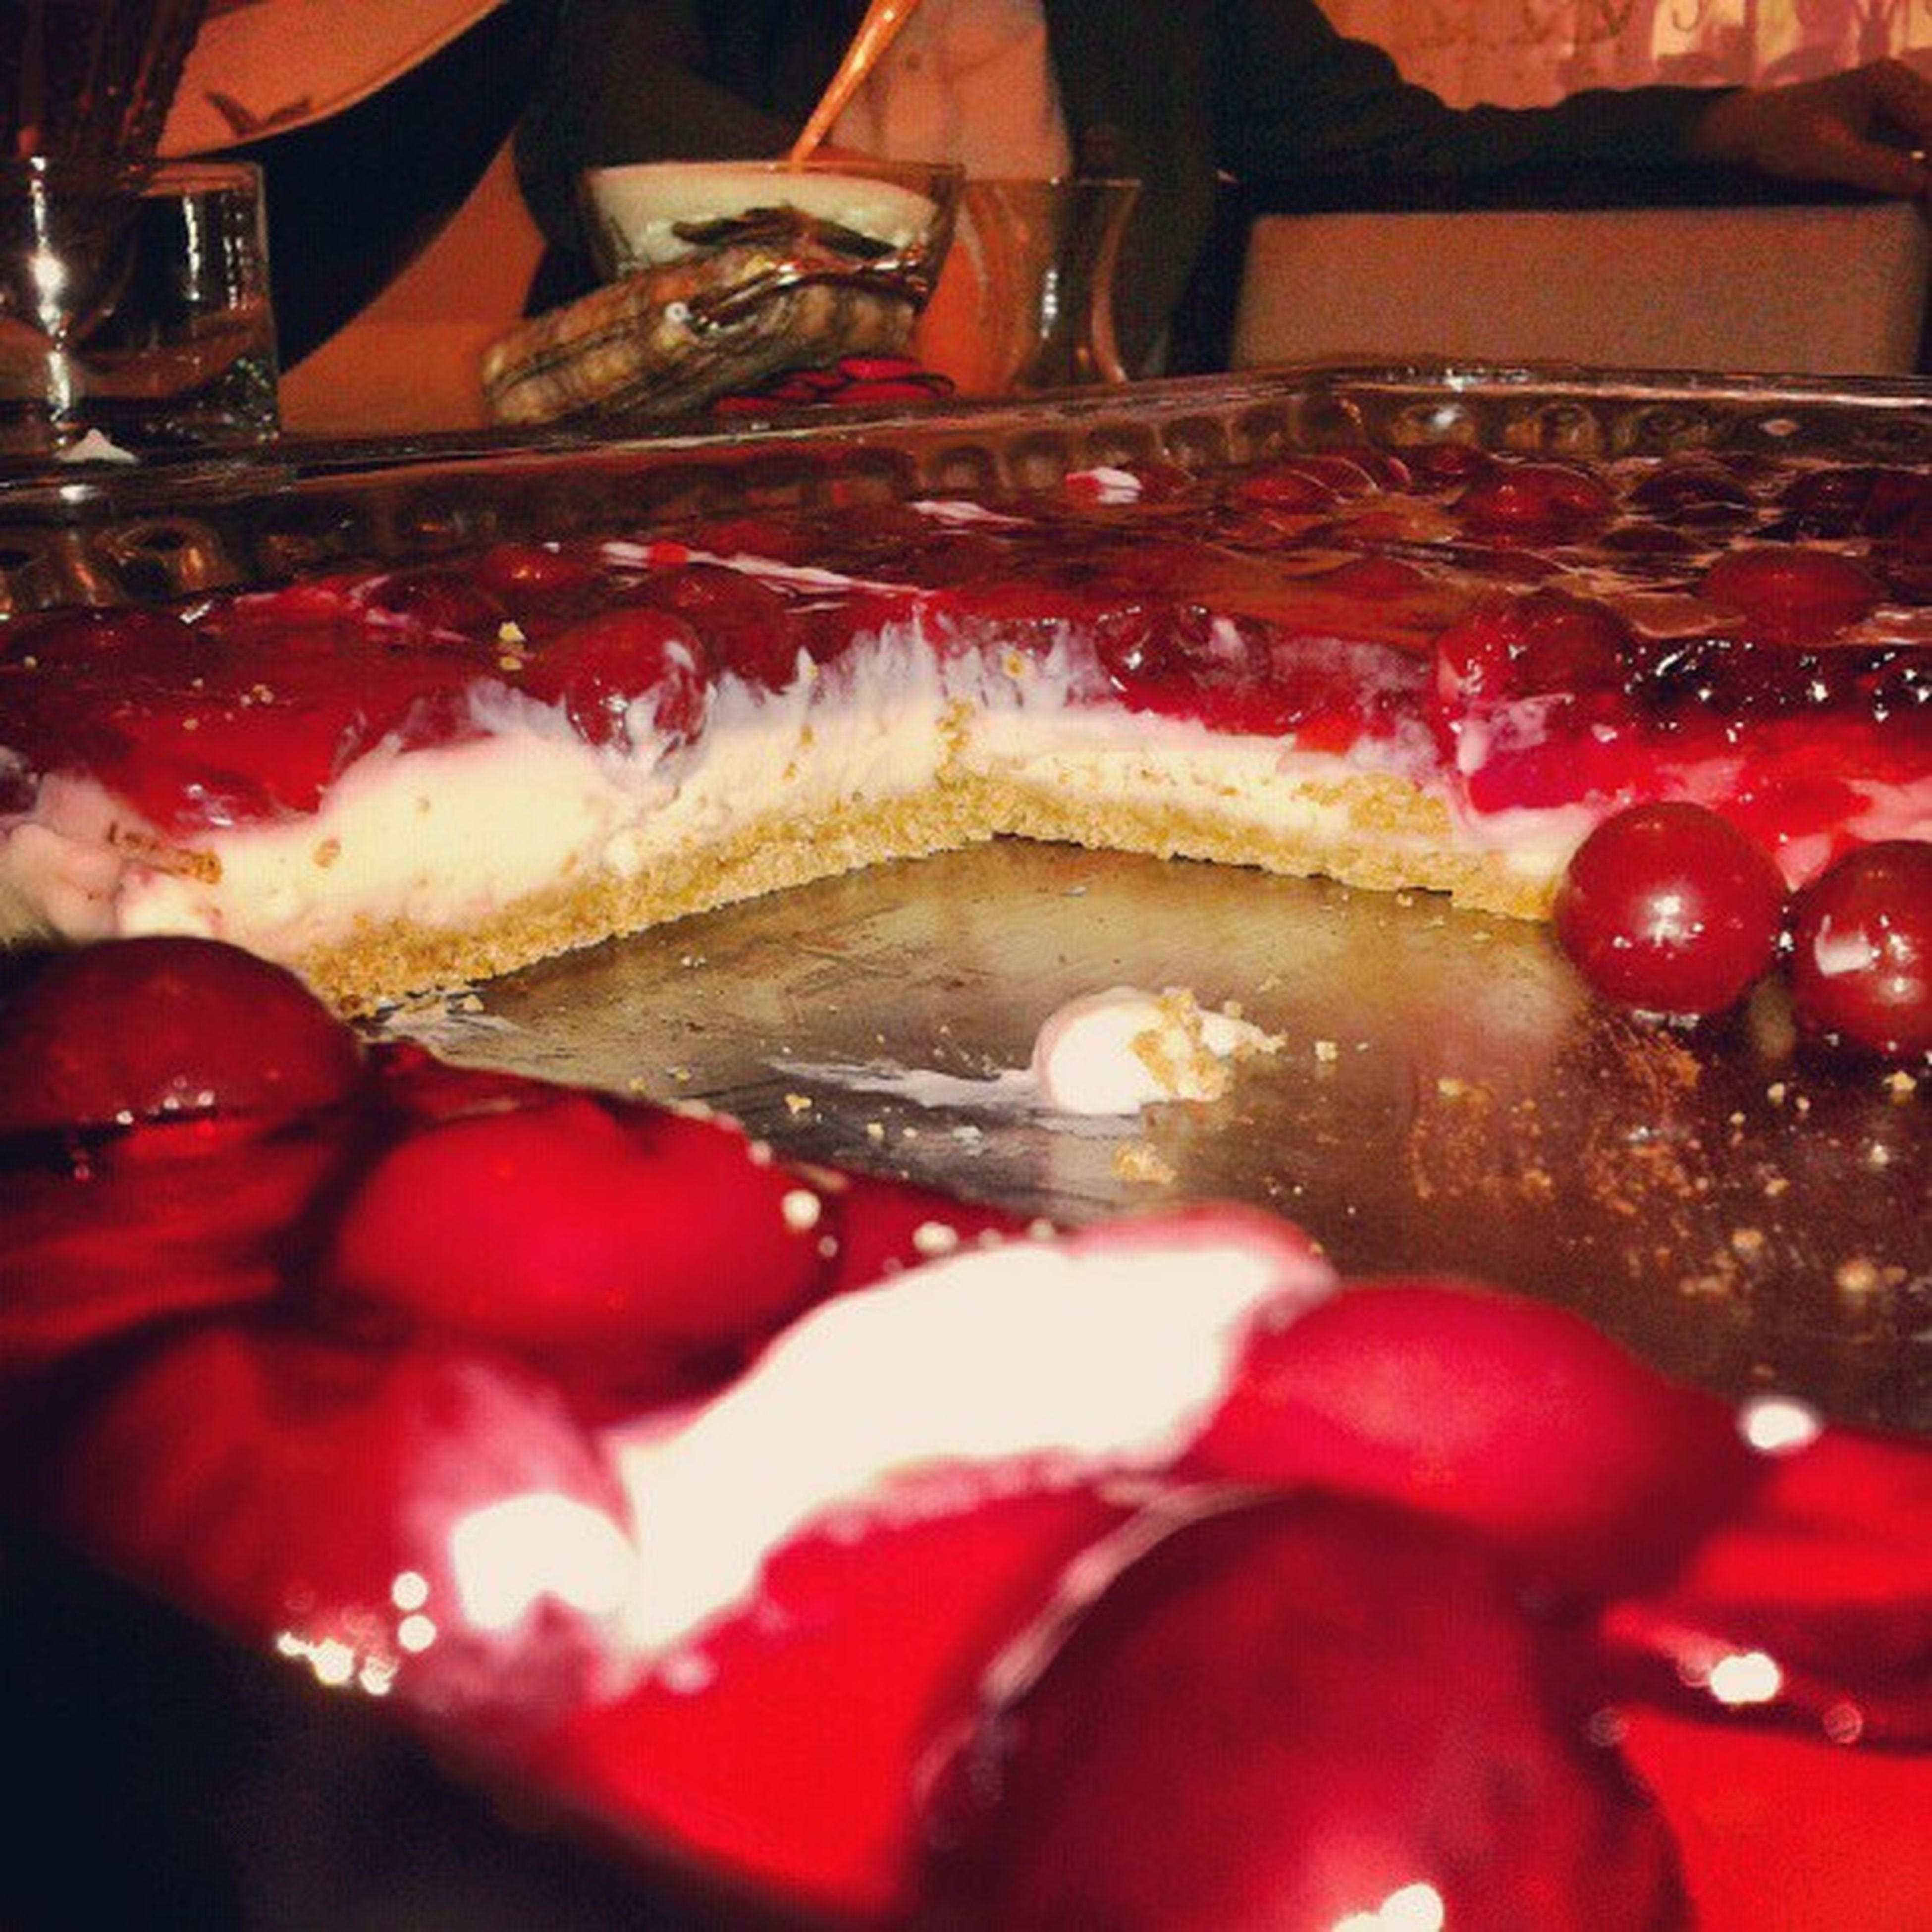 indoors, red, food and drink, close-up, food, freshness, still life, sweet food, selective focus, no people, fruit, indulgence, dessert, focus on foreground, cake, reflection, glass - material, ready-to-eat, cold temperature, christmas